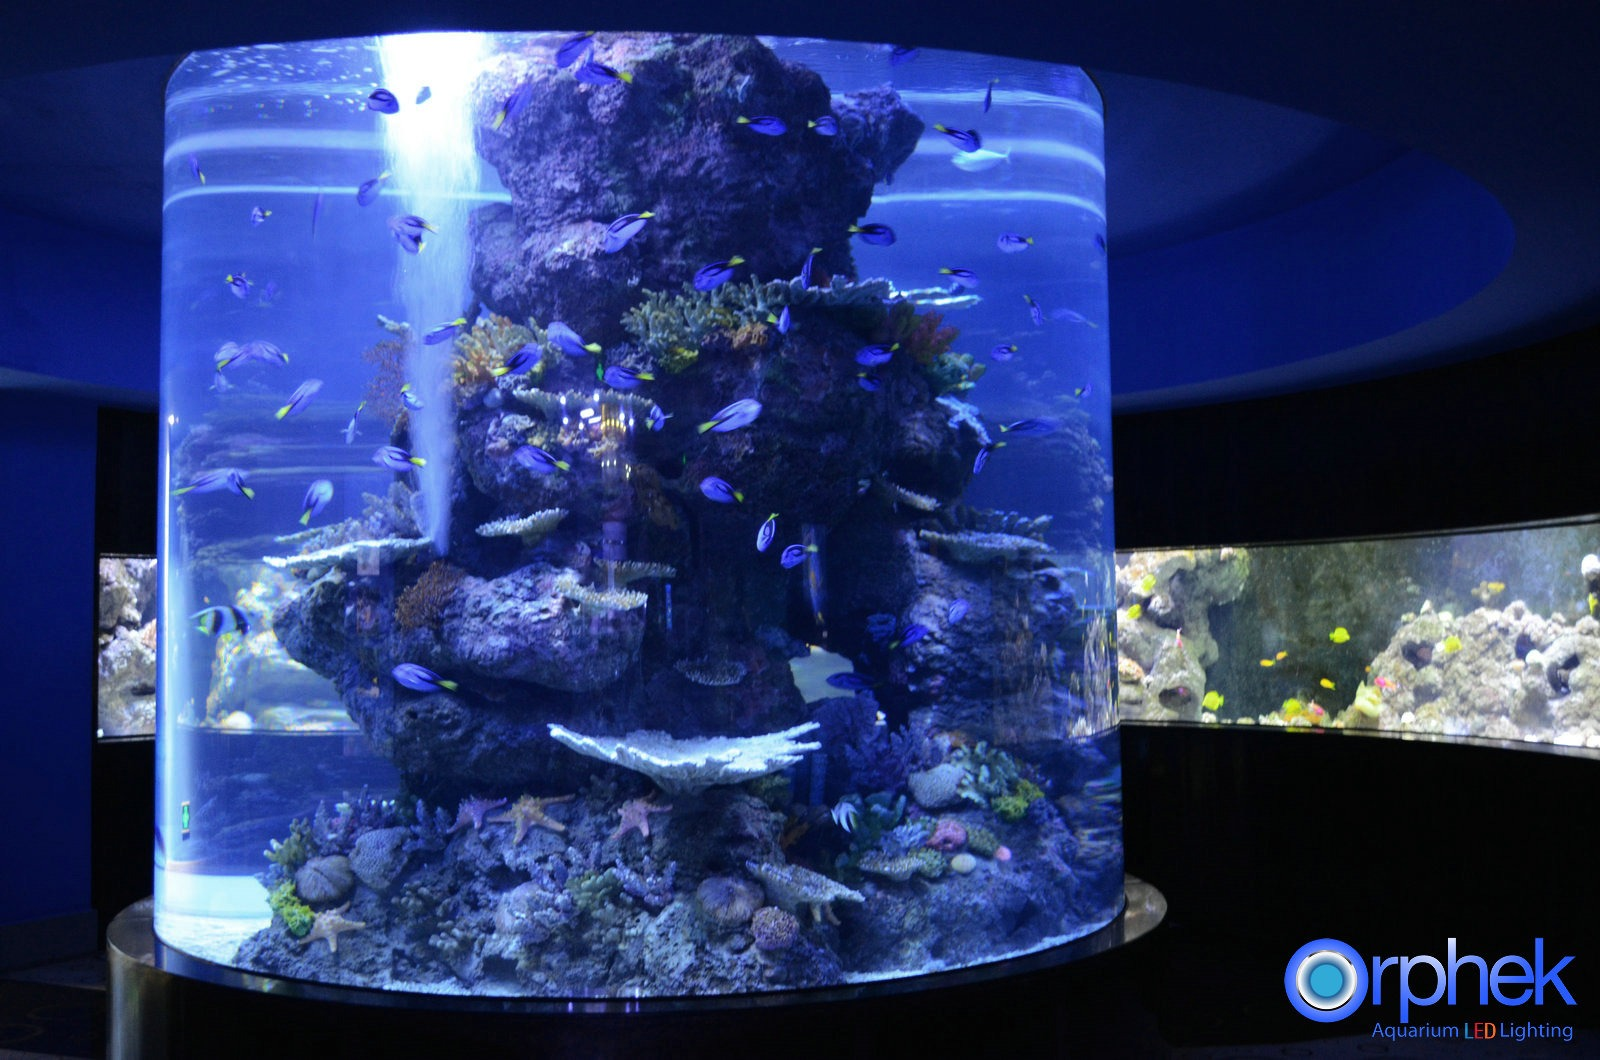 https://orphek.com/led/wp-content/uploads/2015/07/Orphek-Portfolio-aquarium-LED-lighting1.jpg